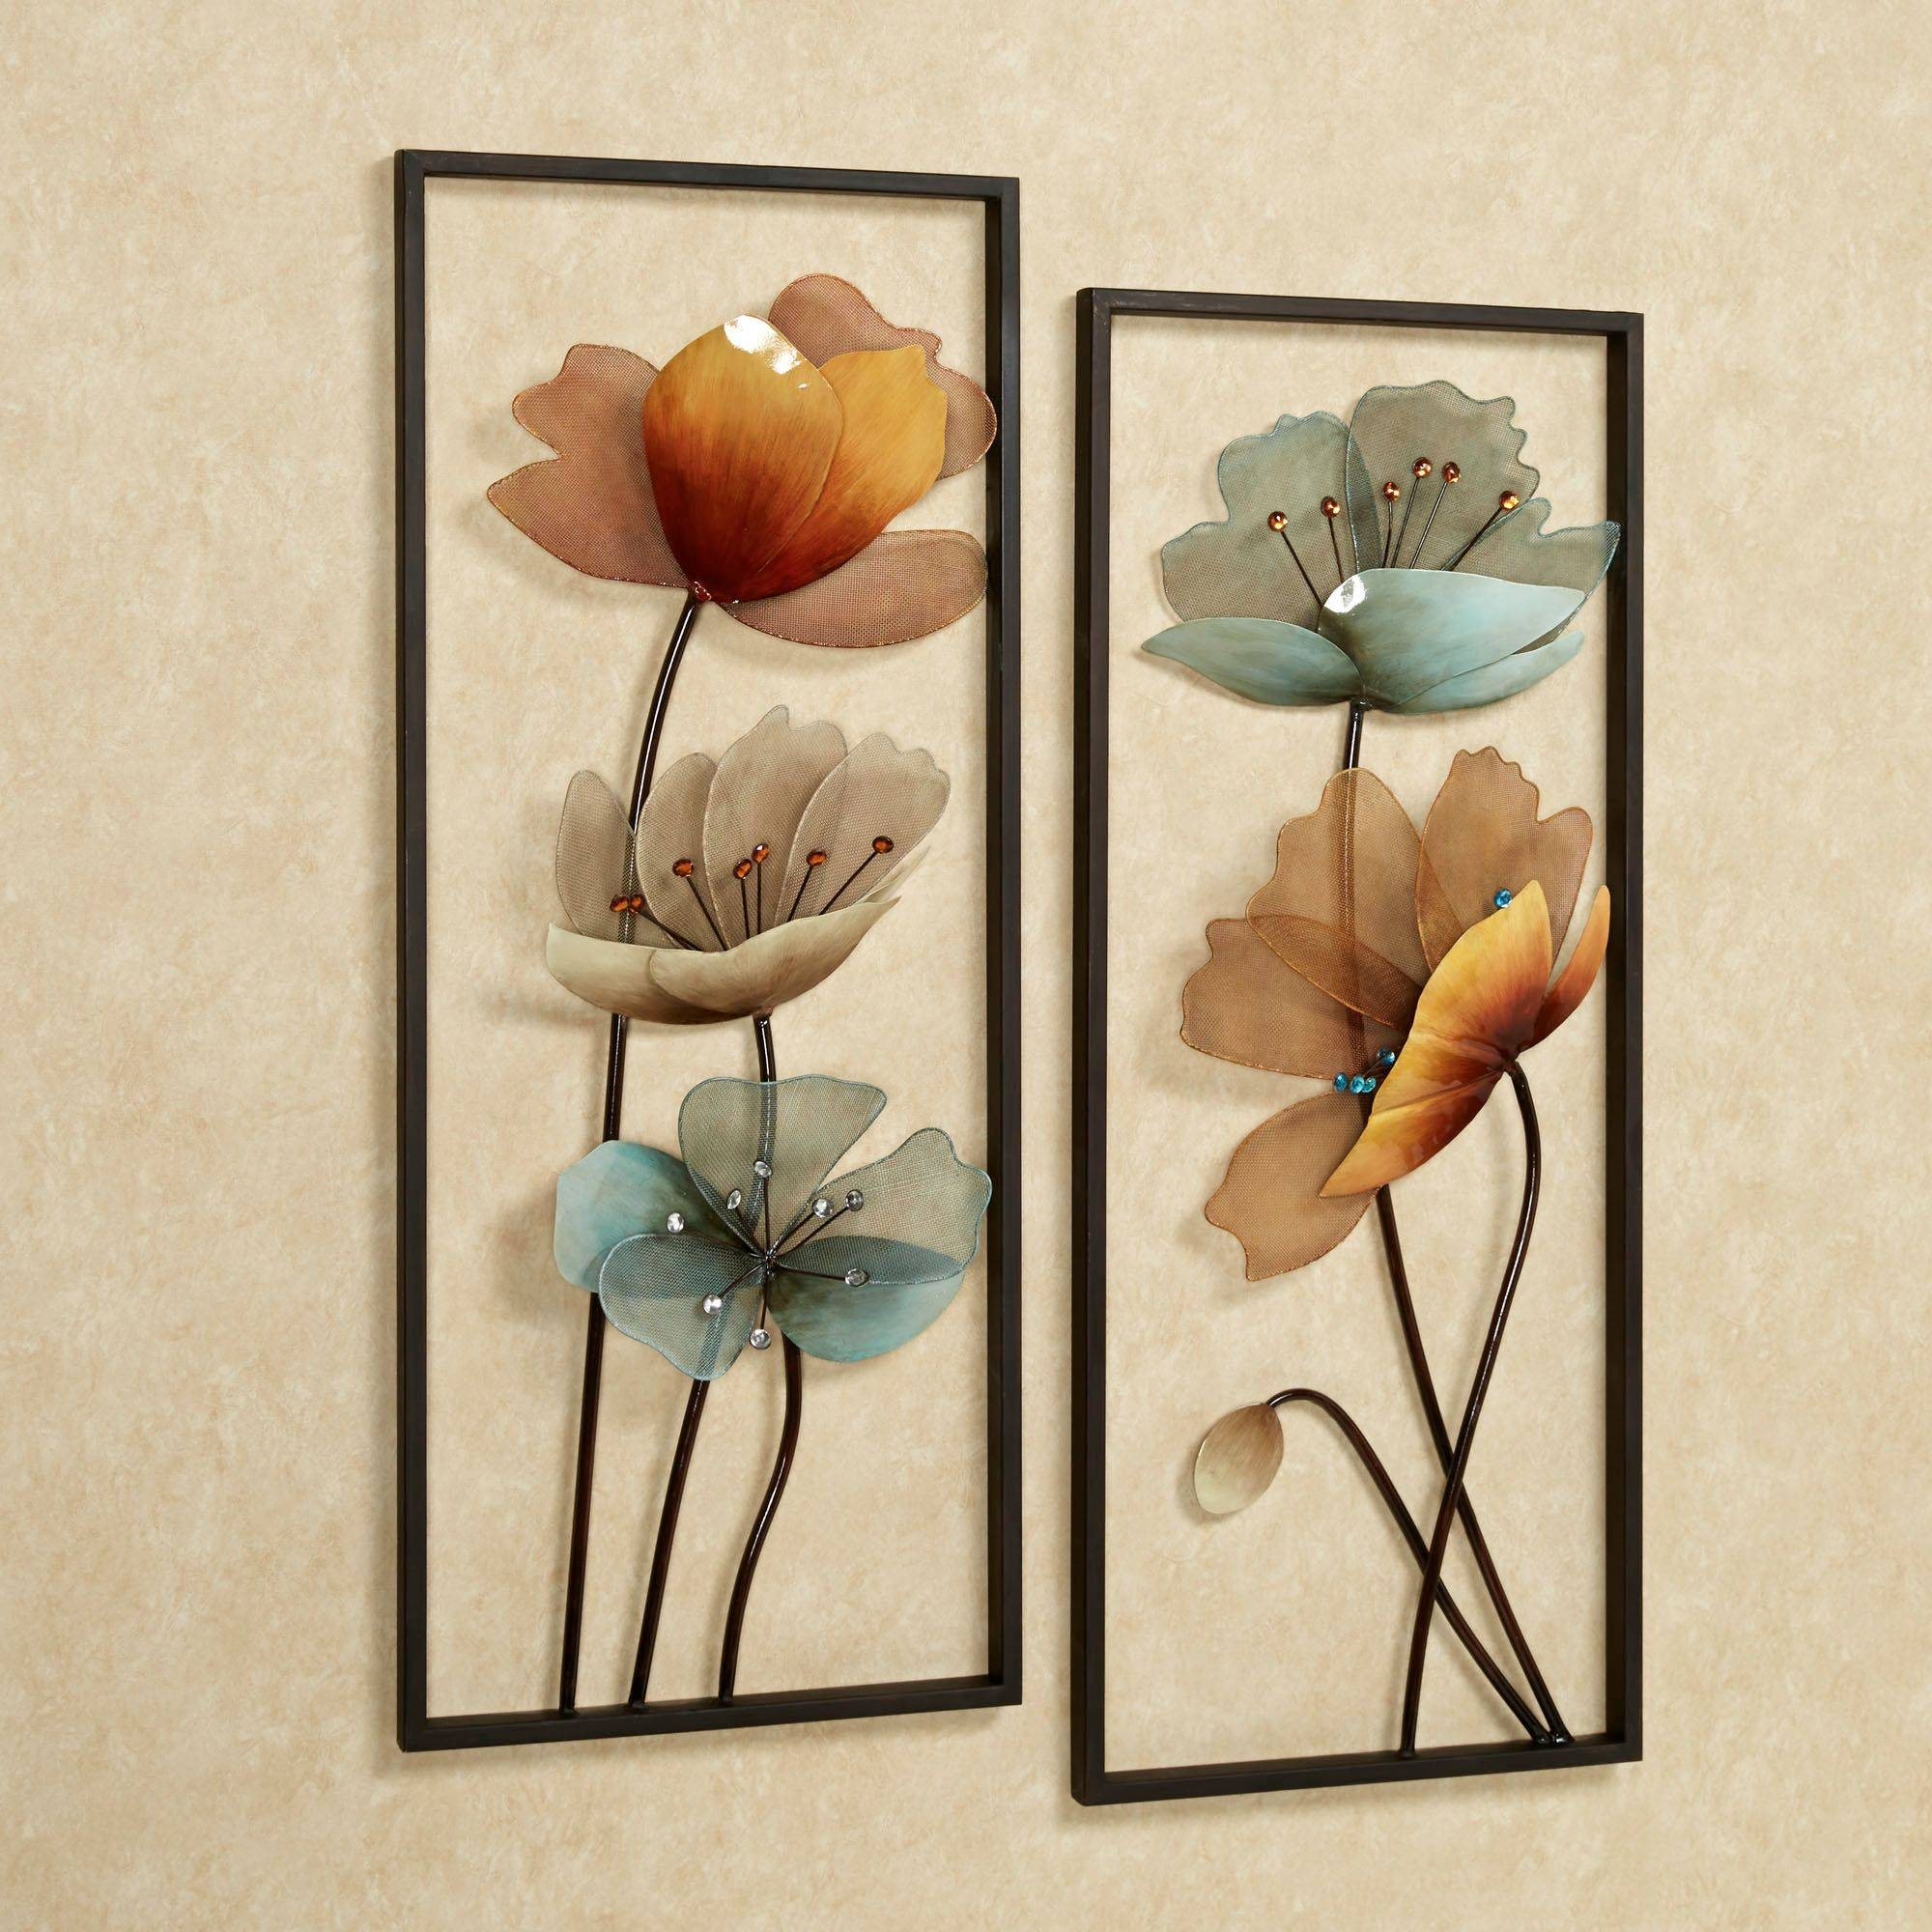 Abstract Metal Wall Art Cheap : Unique Material Decorative Metal Intended For Most Recently Released Metal Wall Art Sets (View 6 of 20)